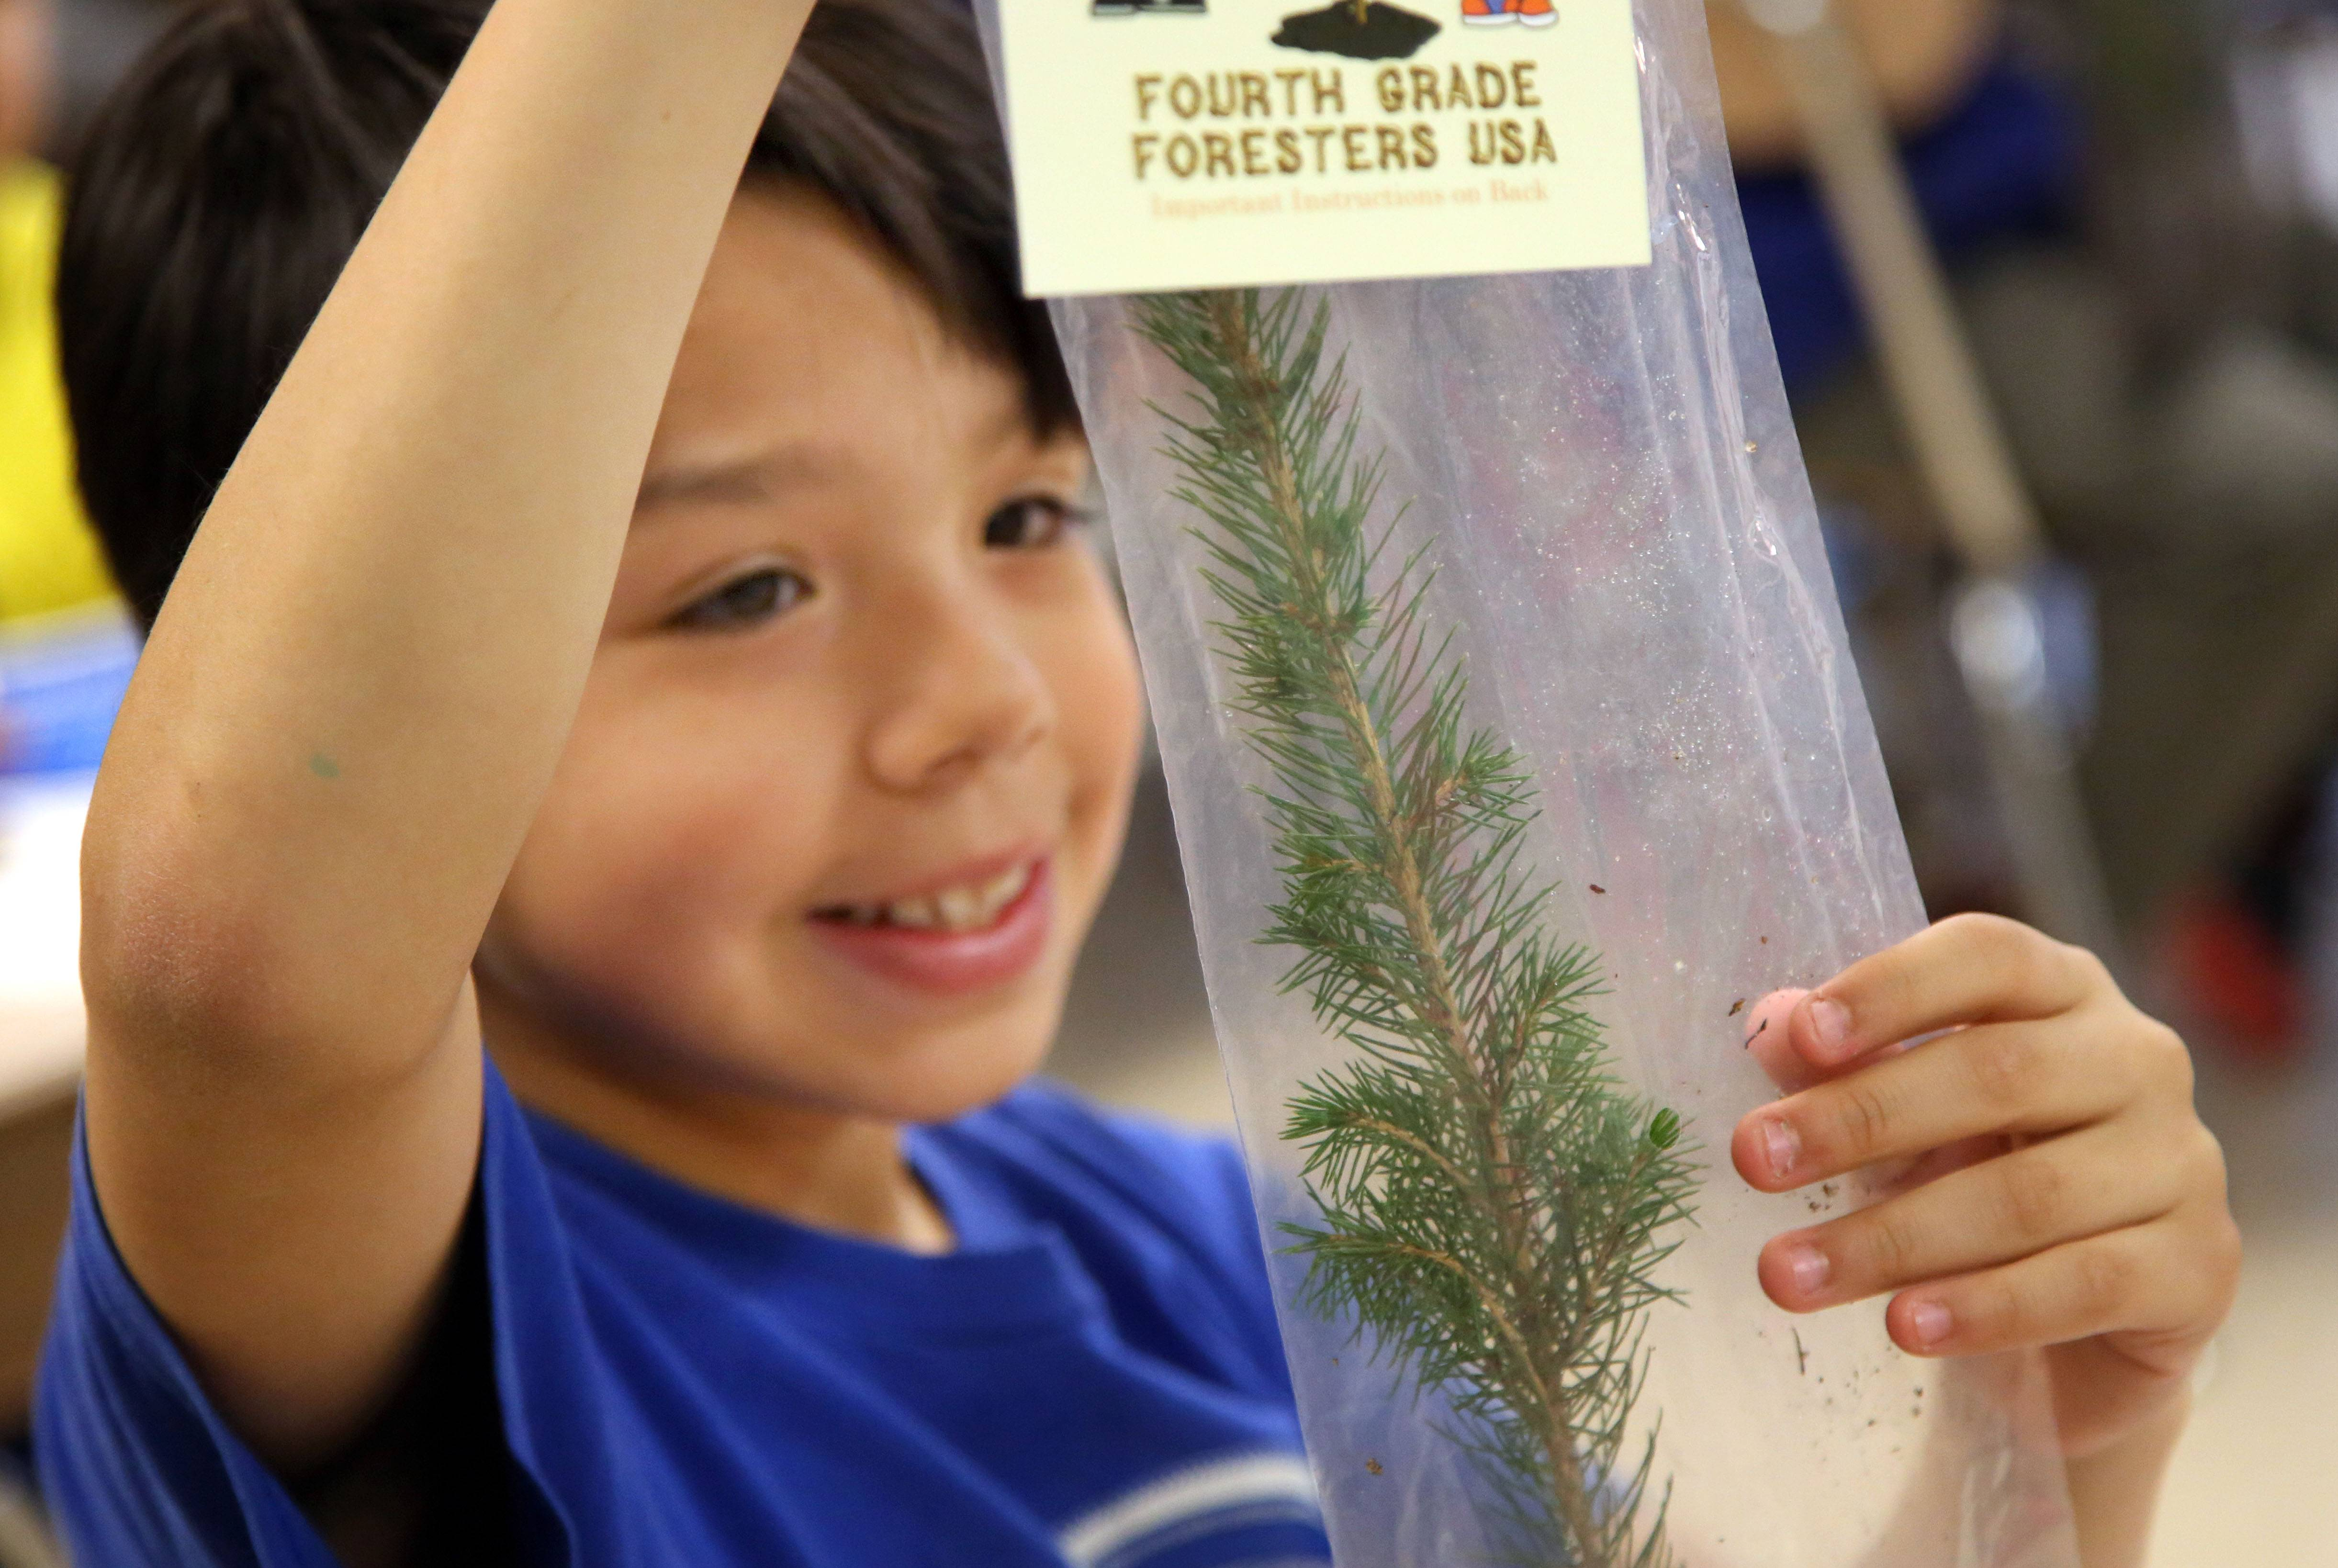 Dominic Valencia looks at his Norway spruce sapling as fourth graders at Woodland Intermediate School in Gurnee received trees to plant at their home Thursday for Arbor Day.